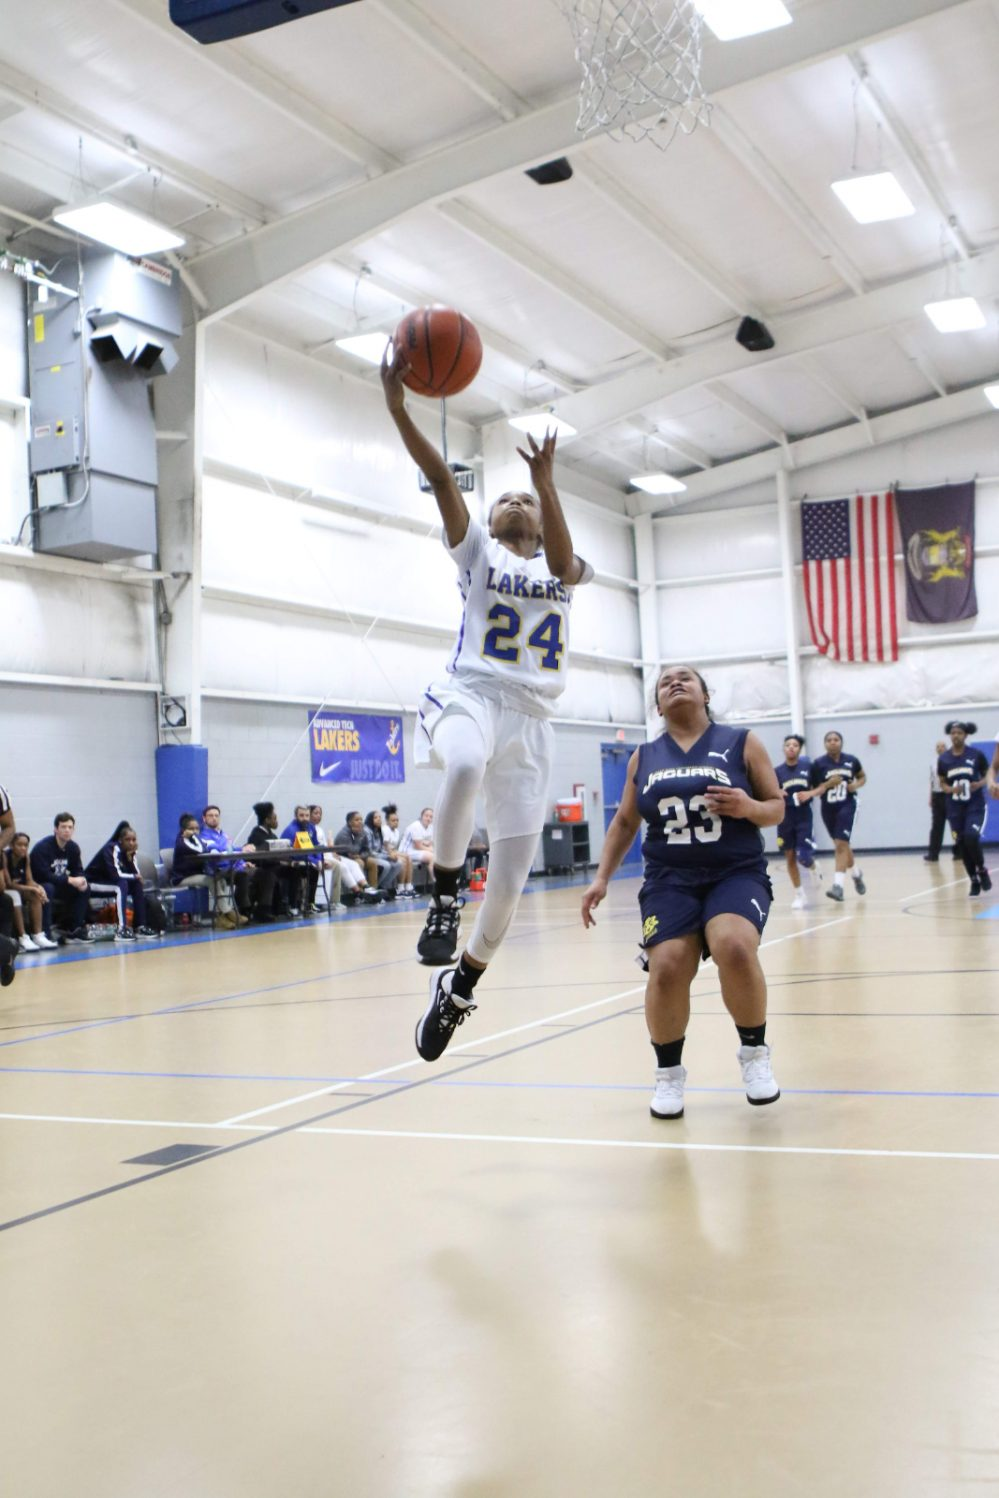 Basketball Try-Outs are on January 16th